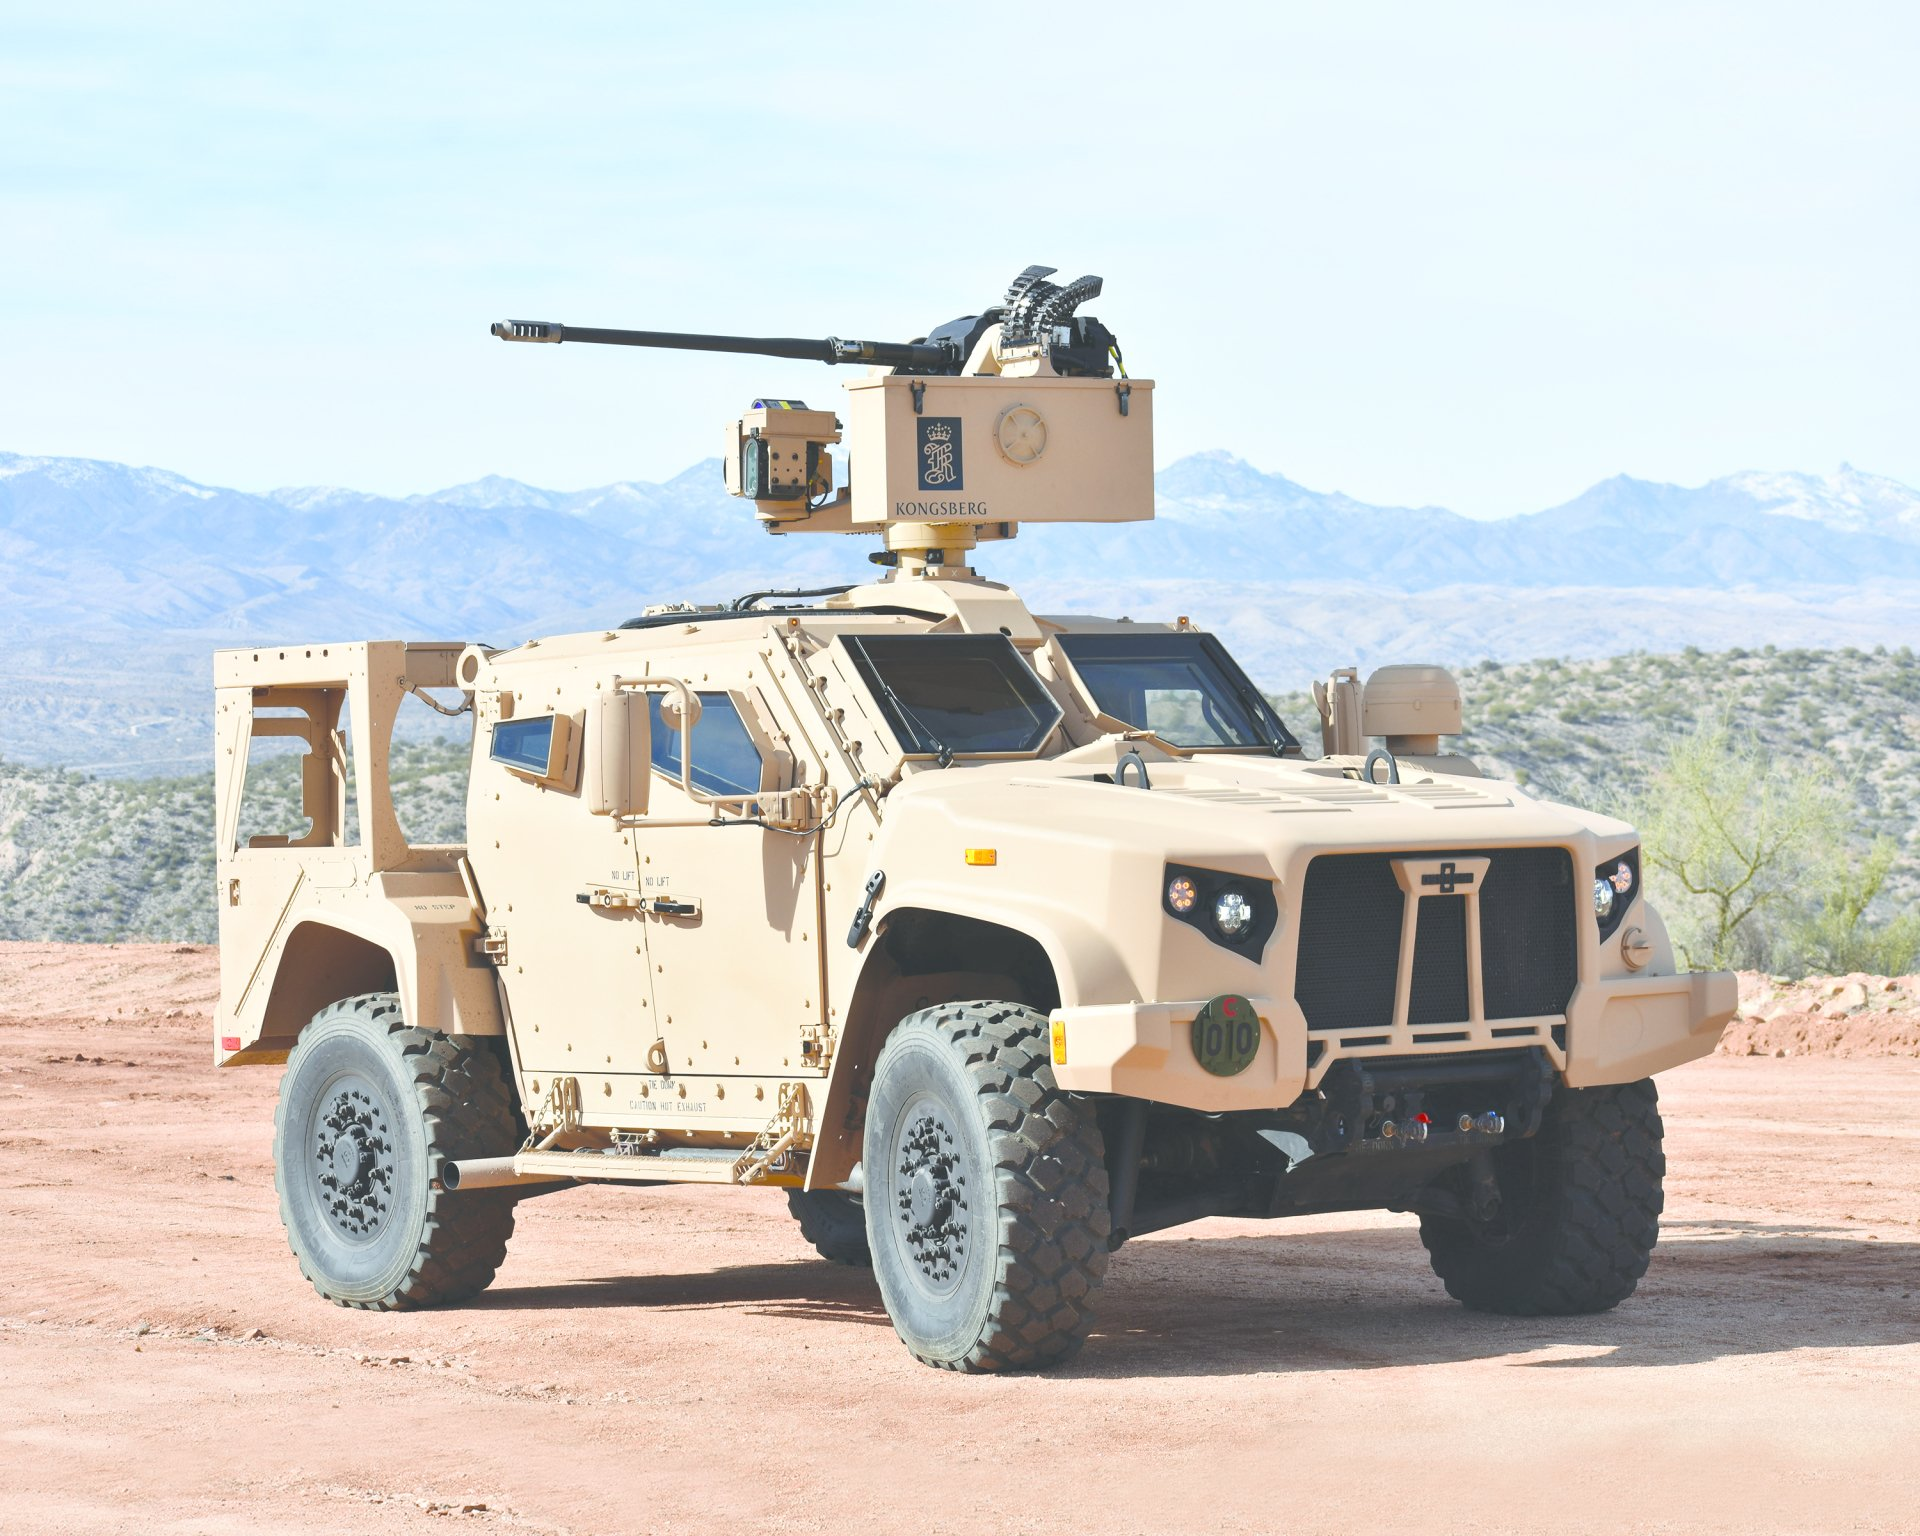 Oshkosh Defense Jltv >> Oshkosh Defense Jltv Joint Light Tactical Vehicle Hd